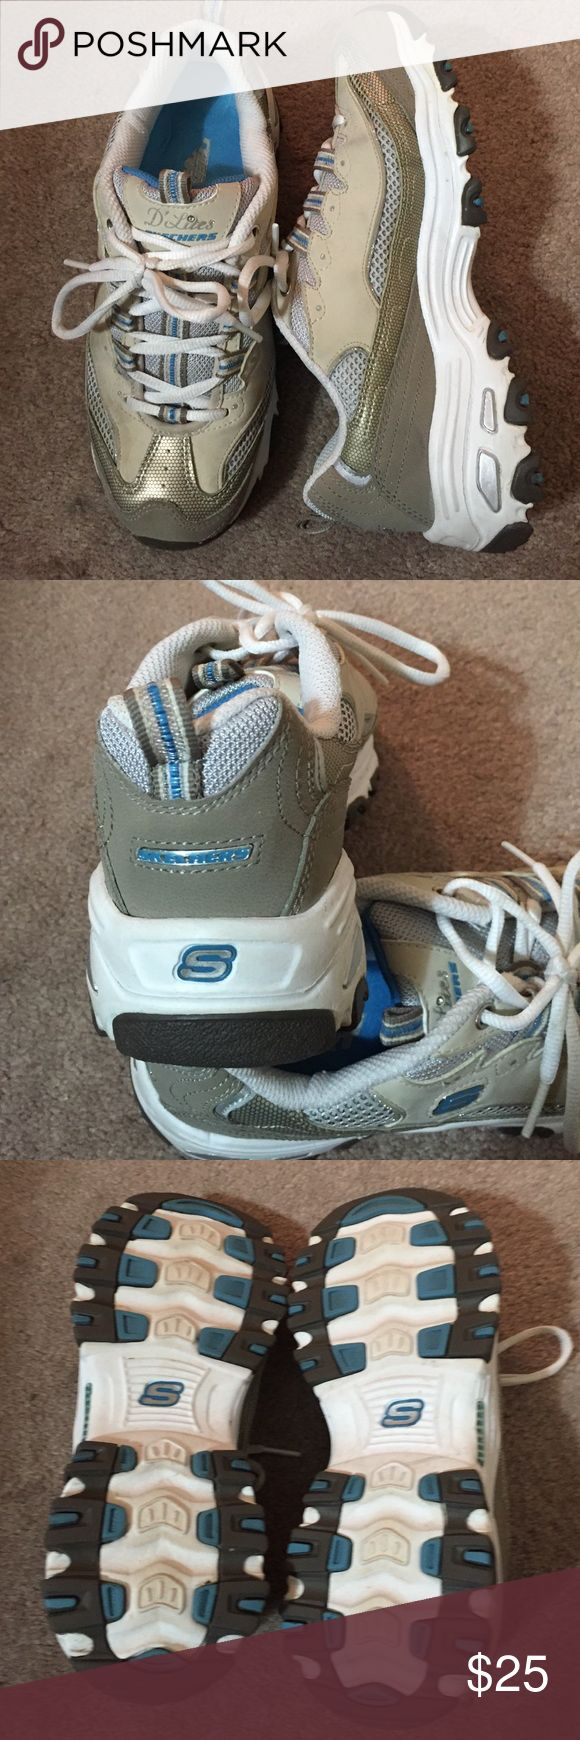 Sketchers Sneakers Sketchers Sneakers D'lites, size 7, only worn a couple times. Great condition see photos. Sketchers Shoes Athletic Shoes